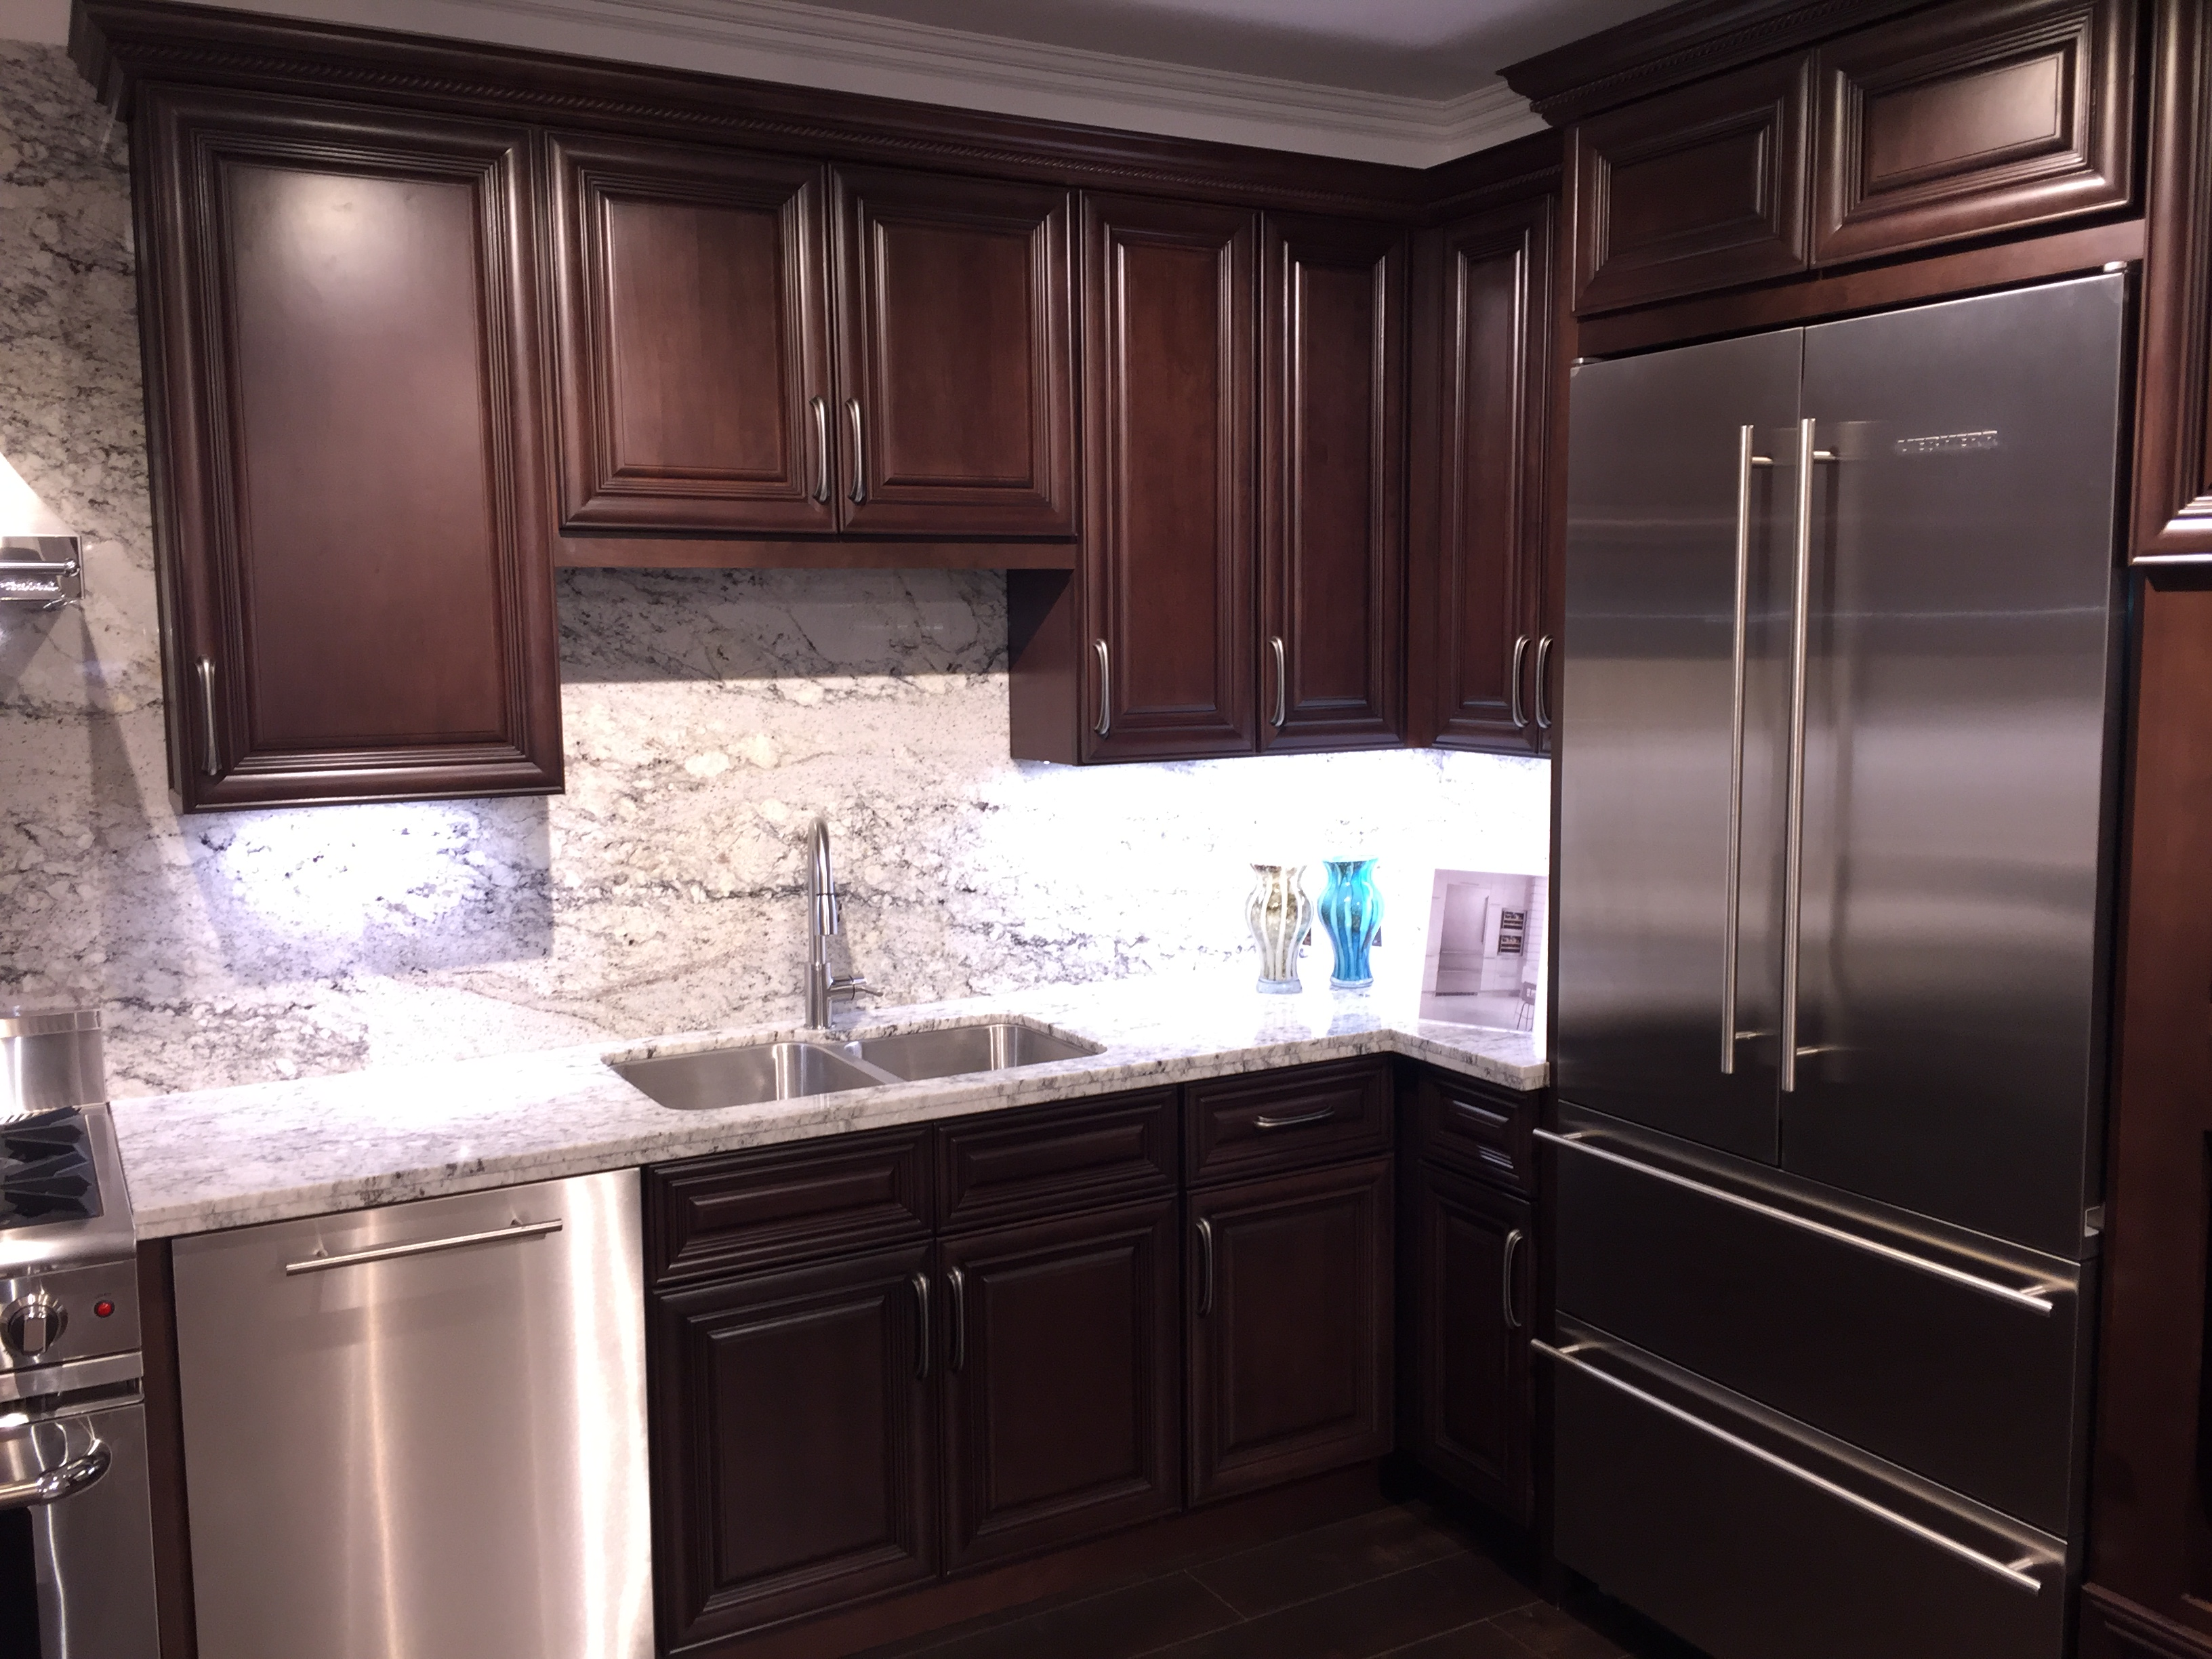 English Walnut colored Cherry Kitchen Cabinets